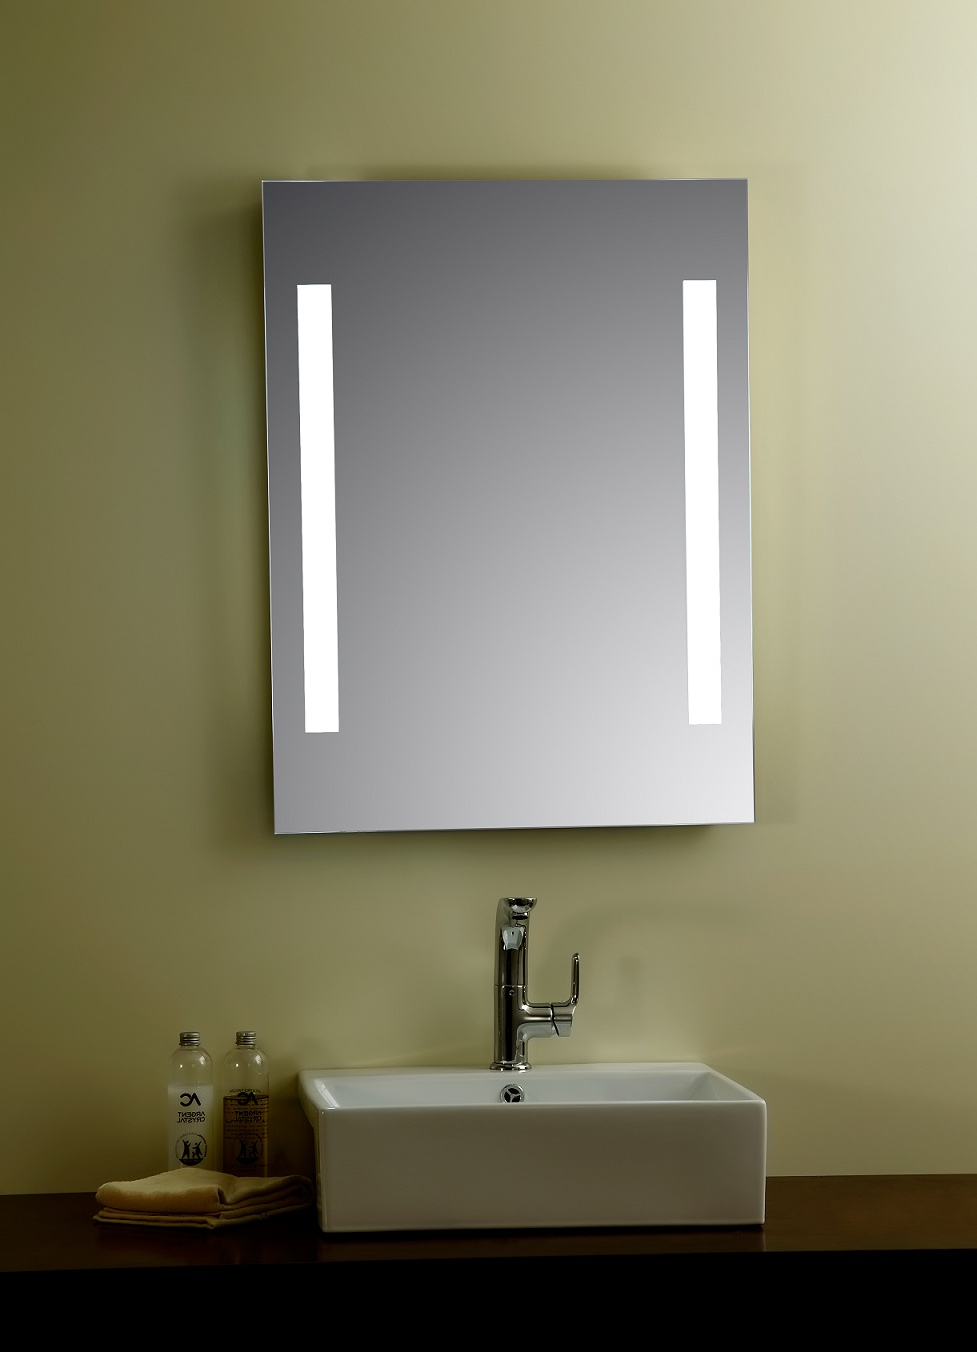 Lighted Bathroom Wall Mirrors Intended For Well Known Livorno Lighted Vanity Mirror Led Bathroom Mirror (Gallery 11 of 20)